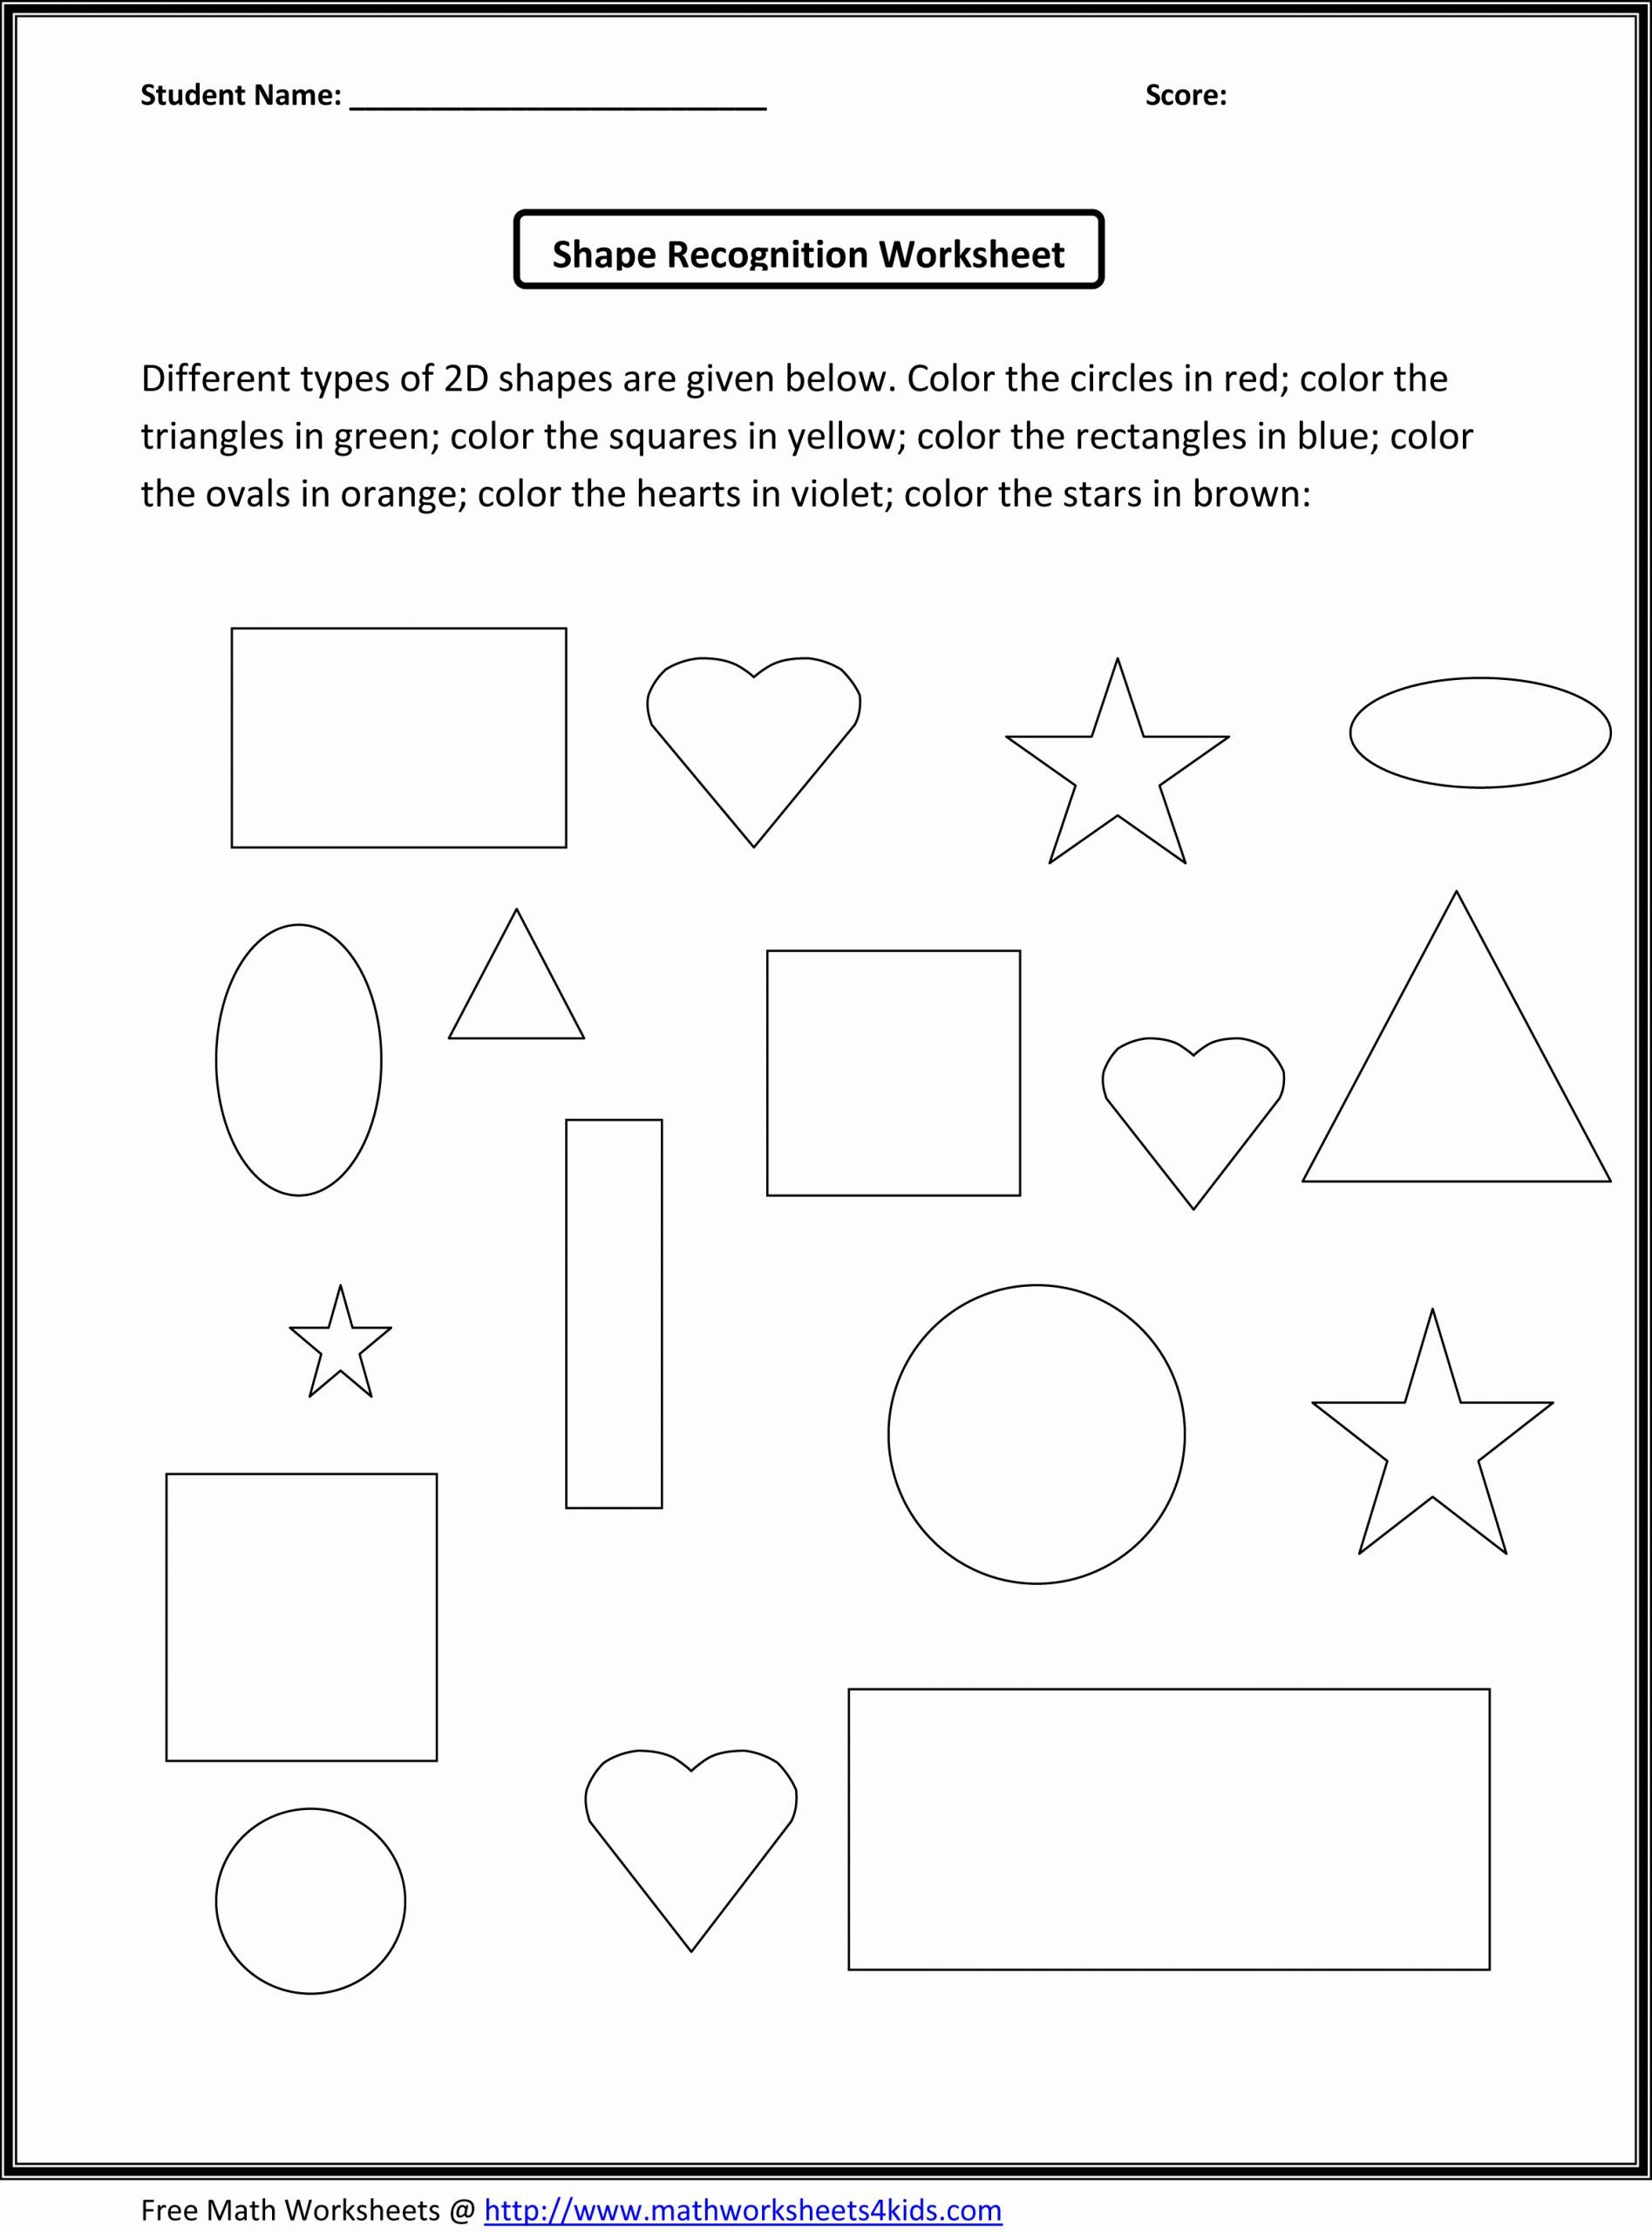 Worksheet For Kindergarten About Shapes In